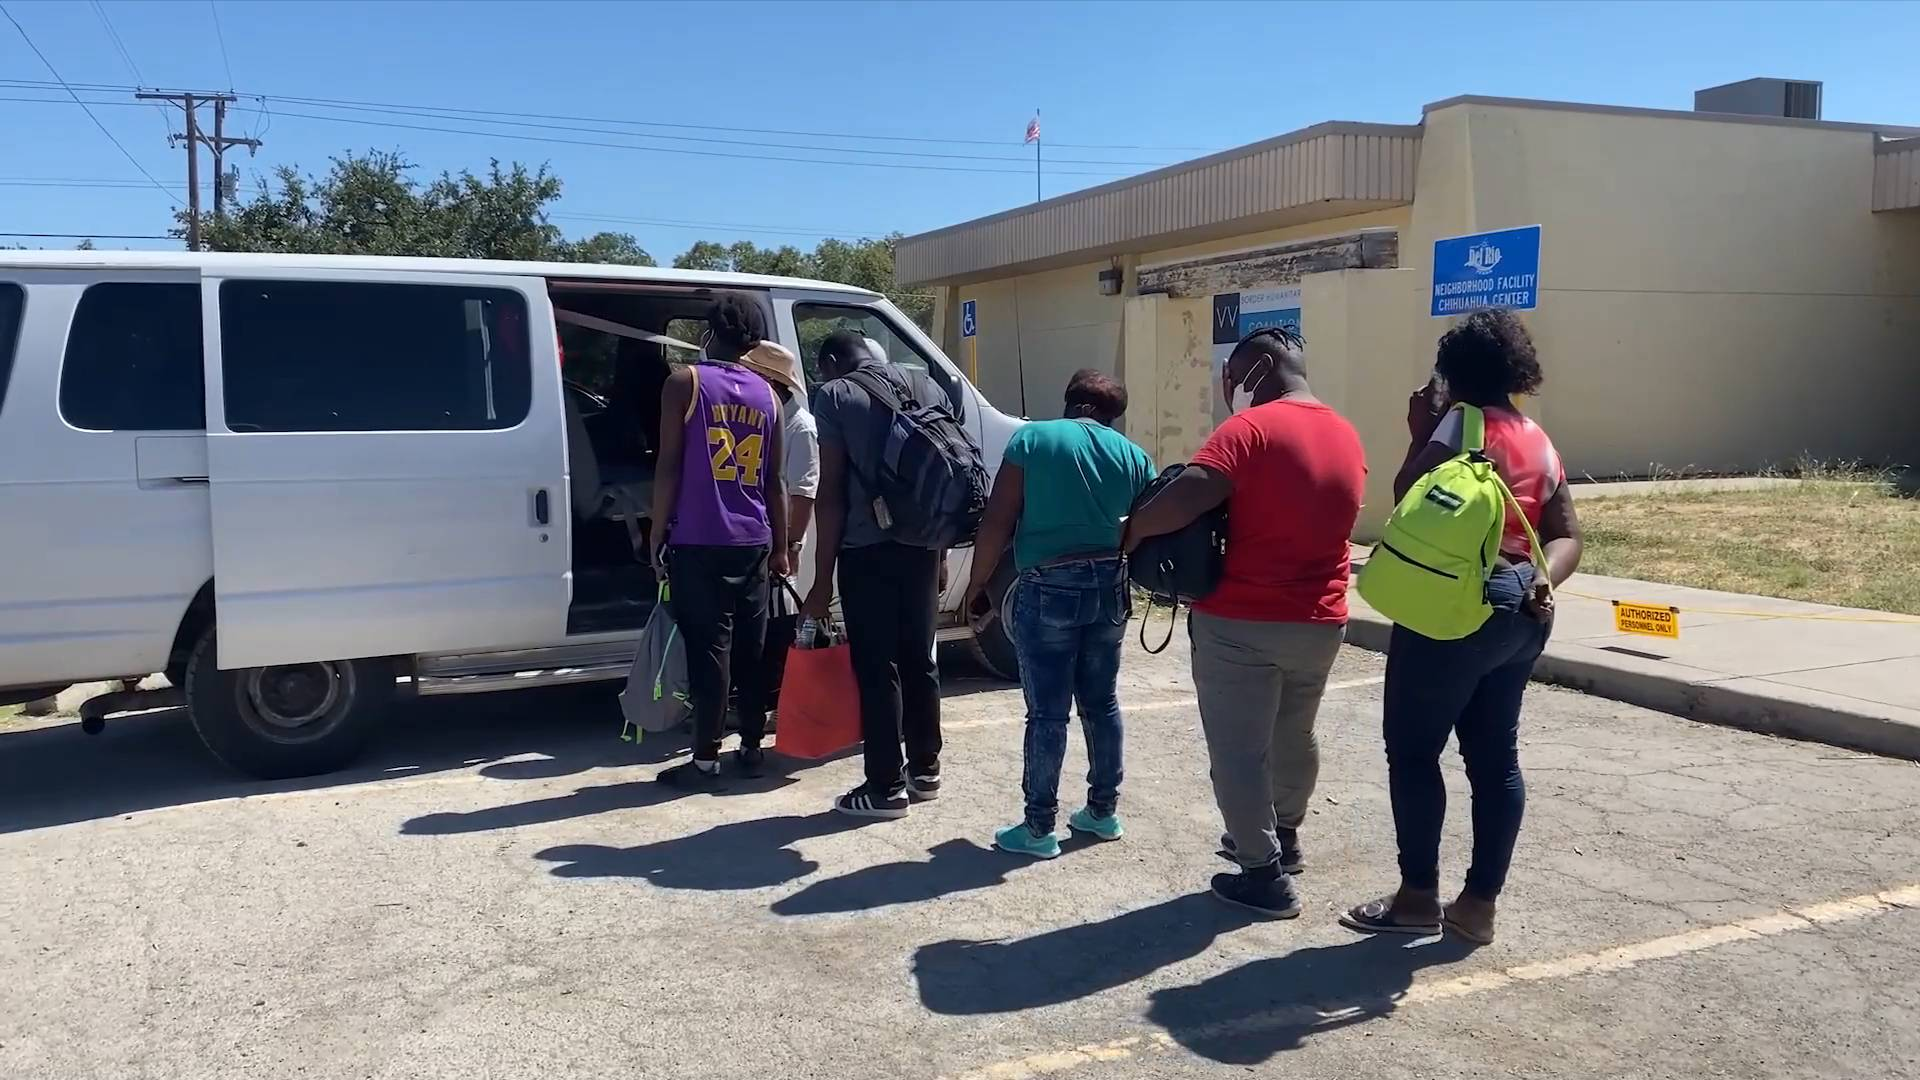 GLOBALink   Camp of nearly 15,000 migrants in U.S. Texas border town cleared out